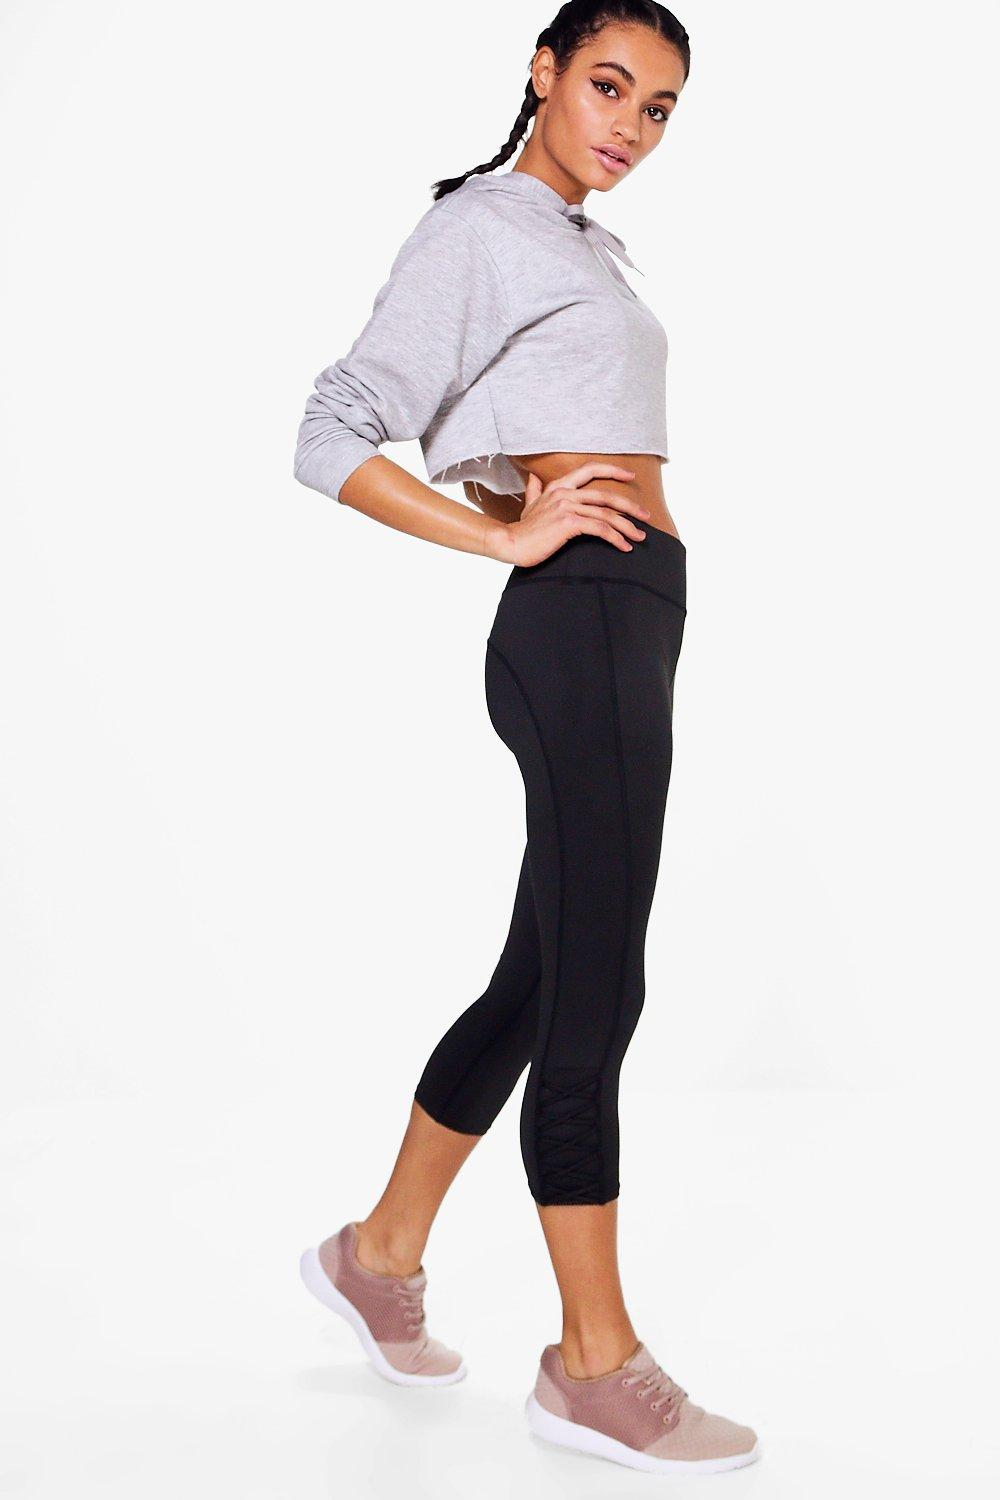 May Fit Criss Cross Capri Running Legging black